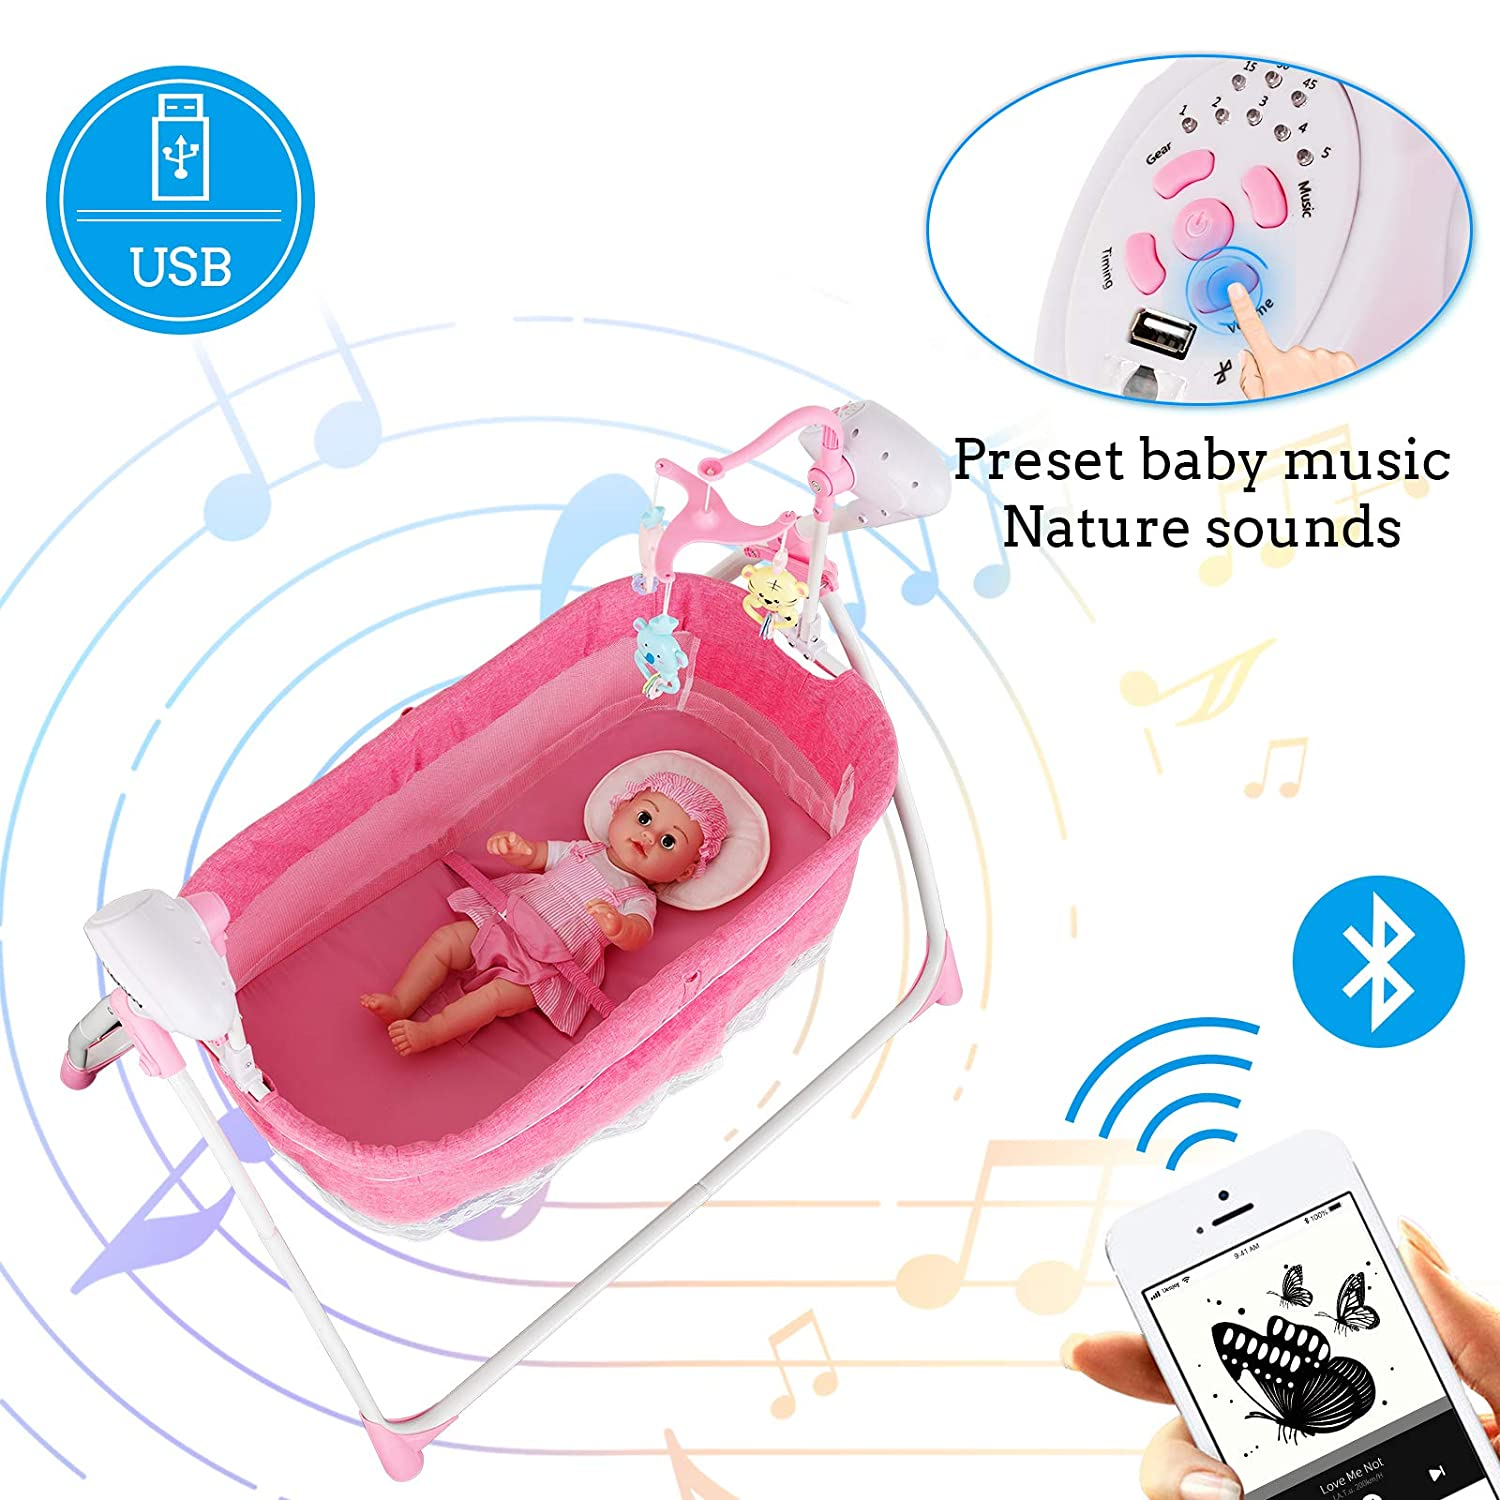 Music Timing Uenjoy Automatic Baby Electric Basket Rocking Multifunction Baby Swing Cradle Bed,Remote or Panel Control Adjustable Speed Gray